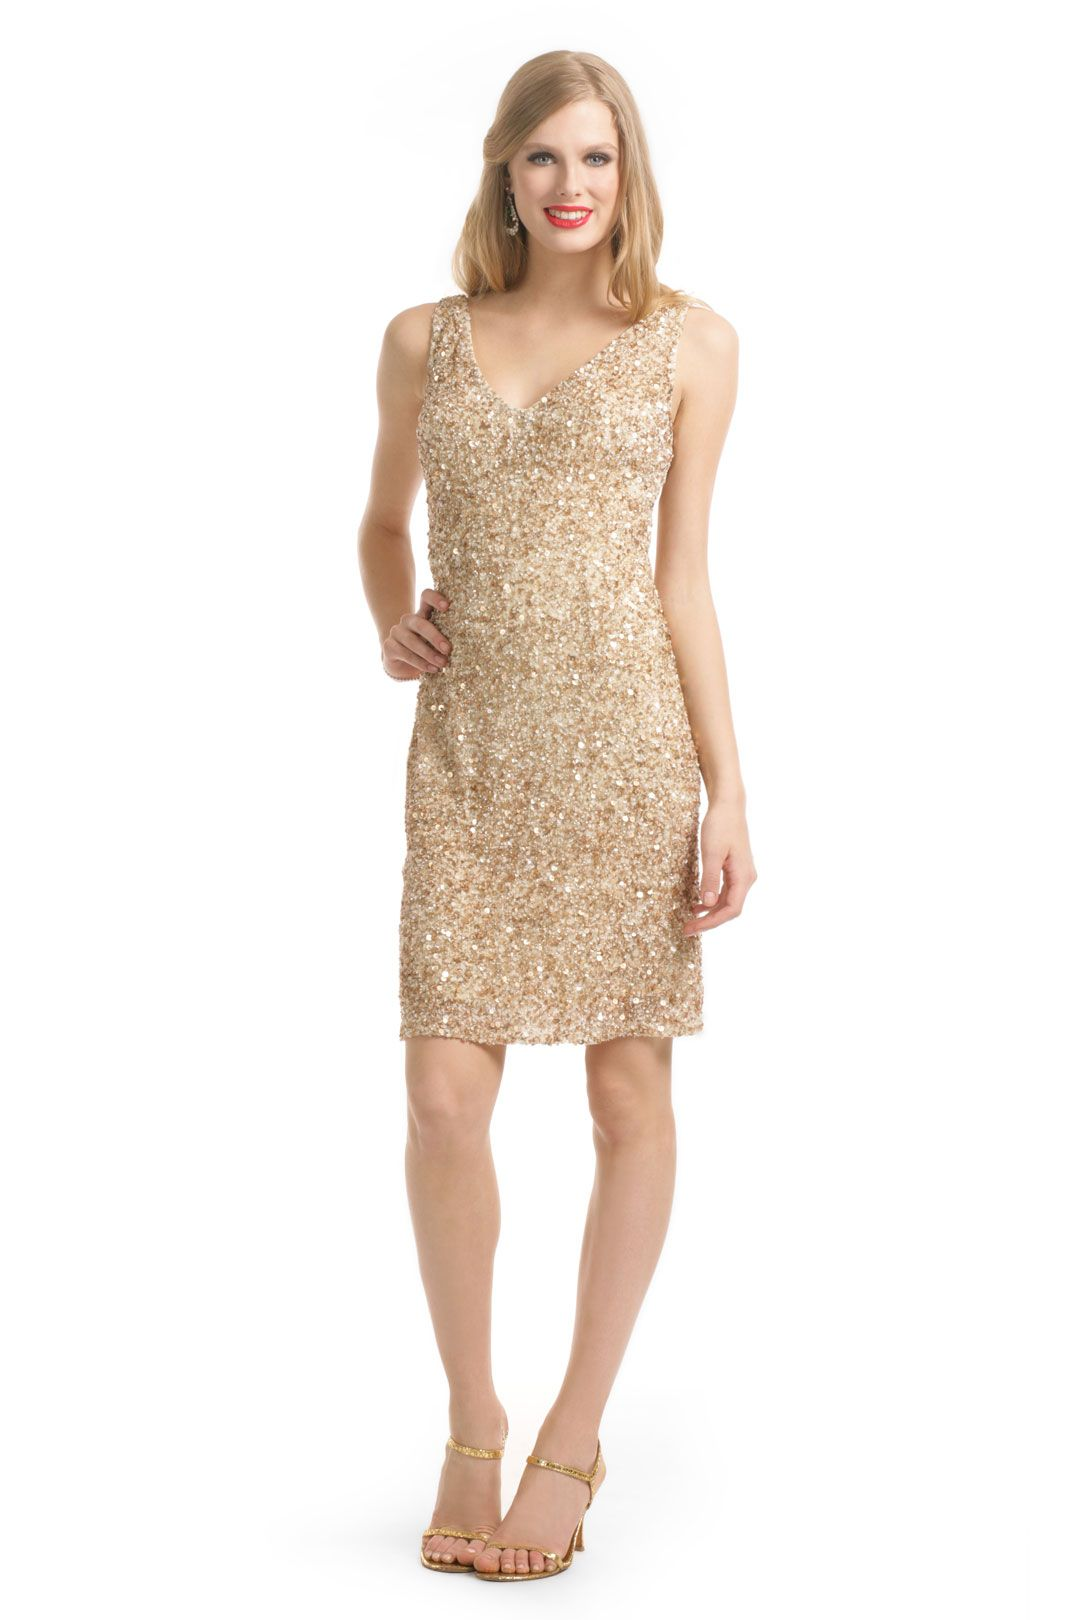 Theia Dipped in Vanilla Dress | Sparkly dresses | Pinterest